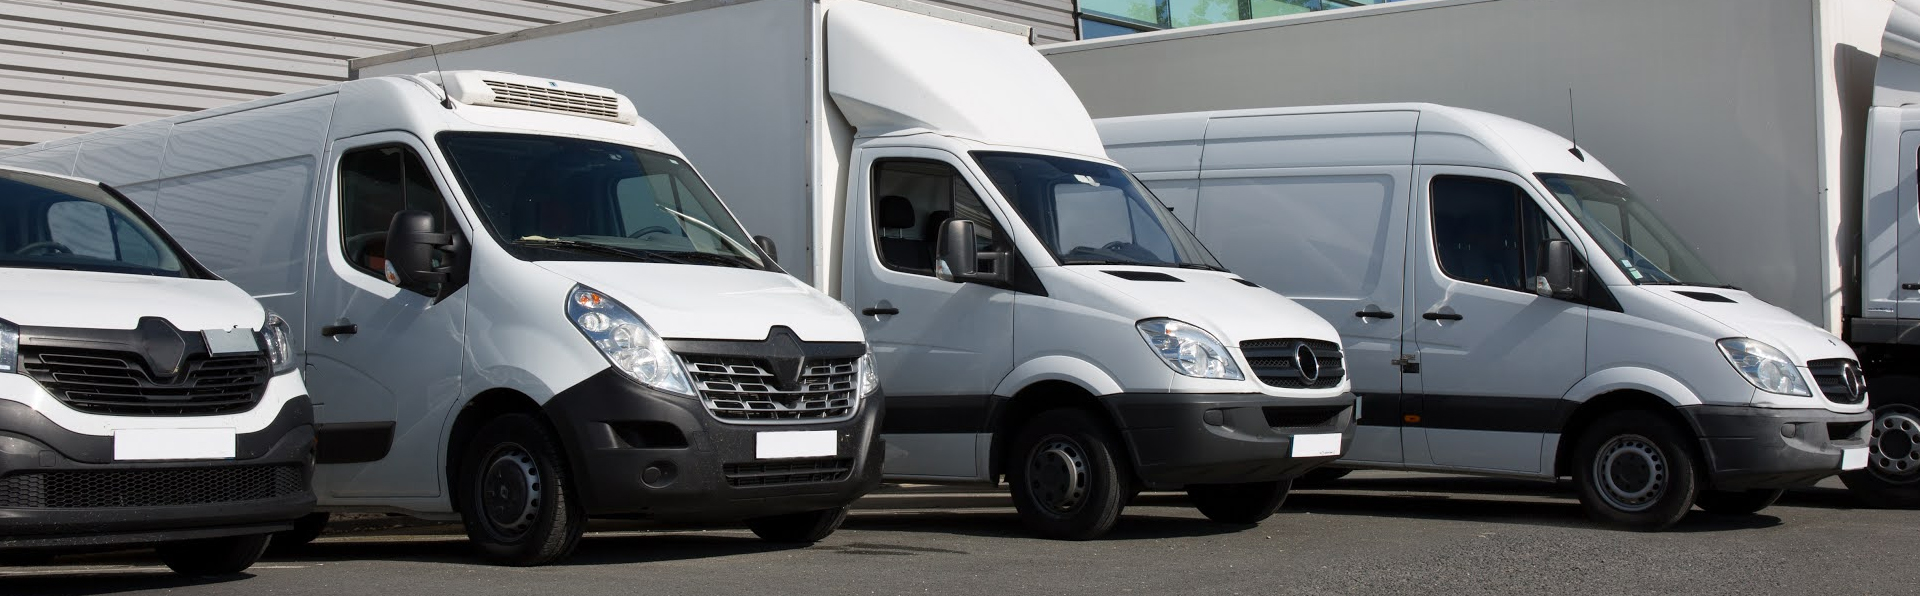 Why Should I Lease a Commercial Vehicle?